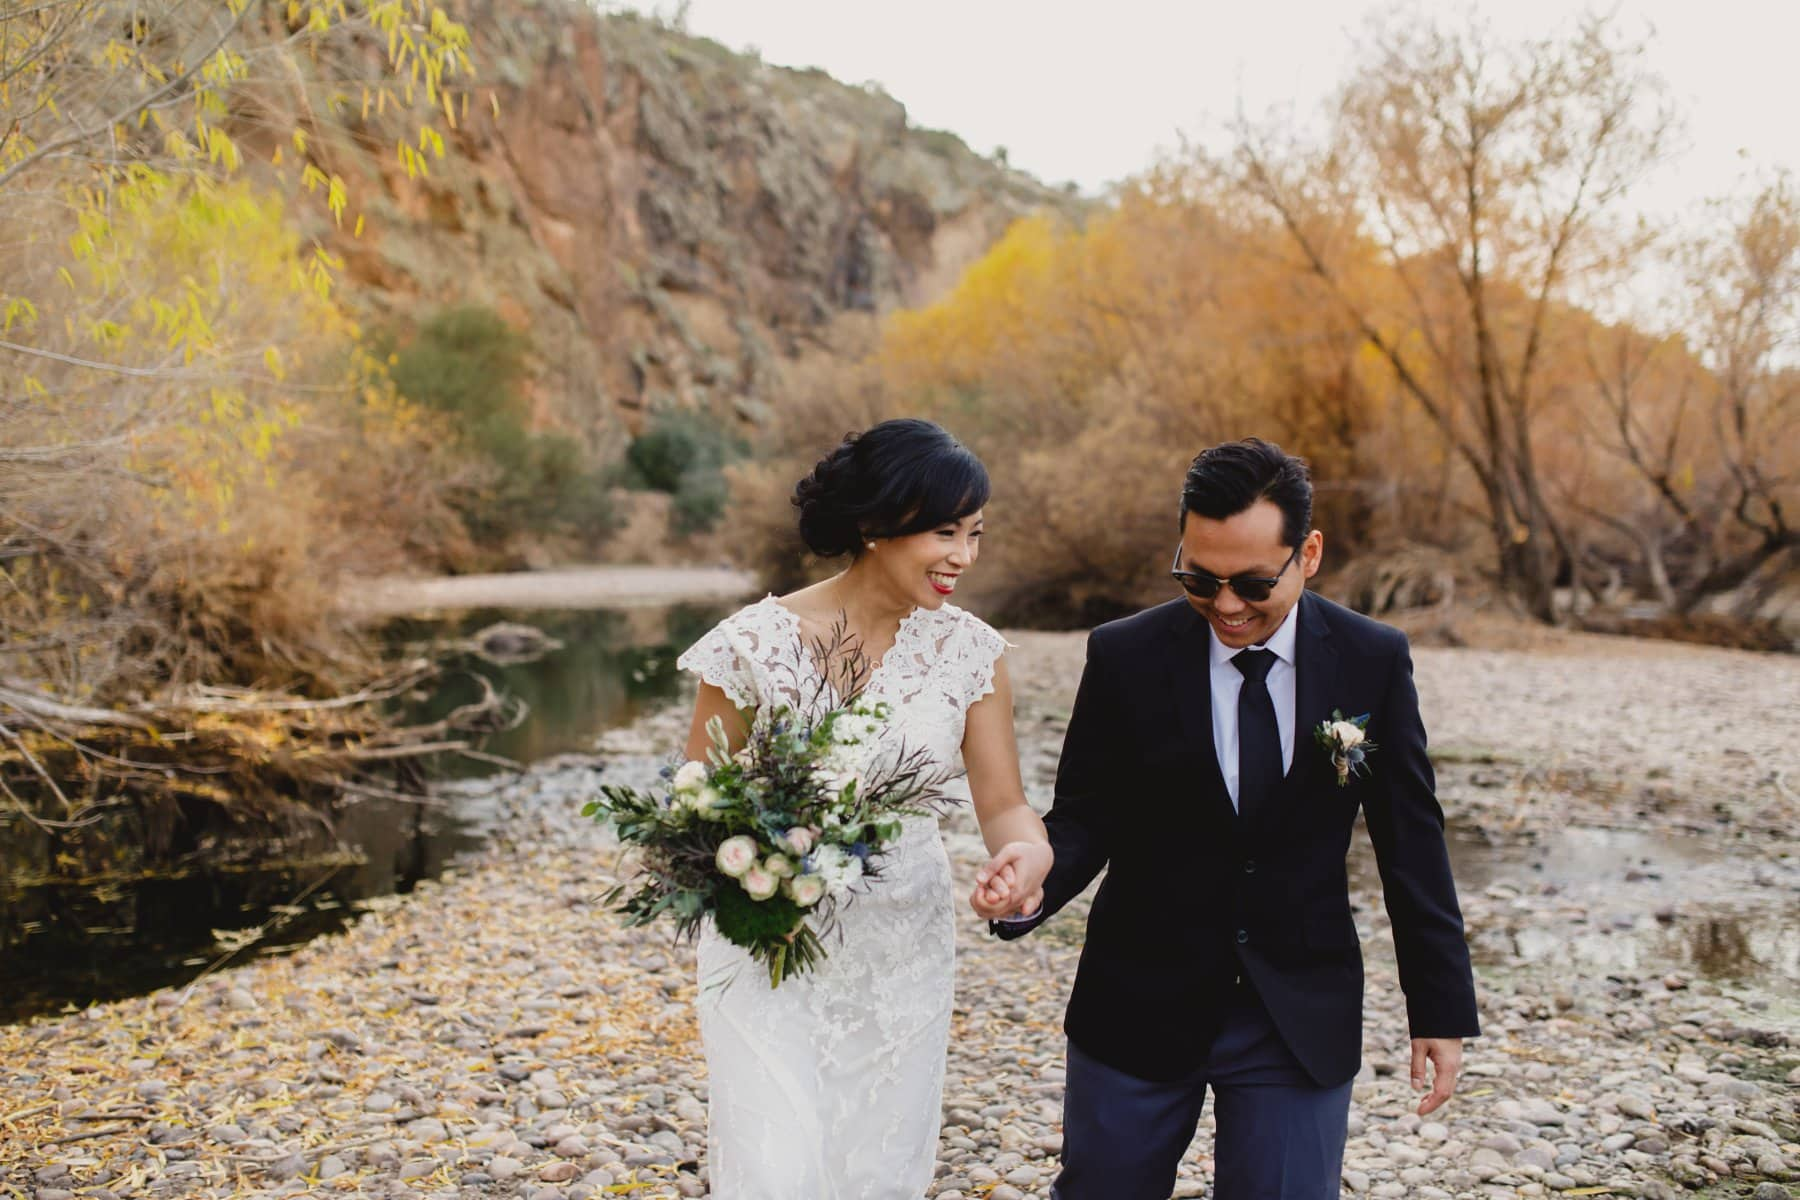 beautiful outside wedding location in Arizona